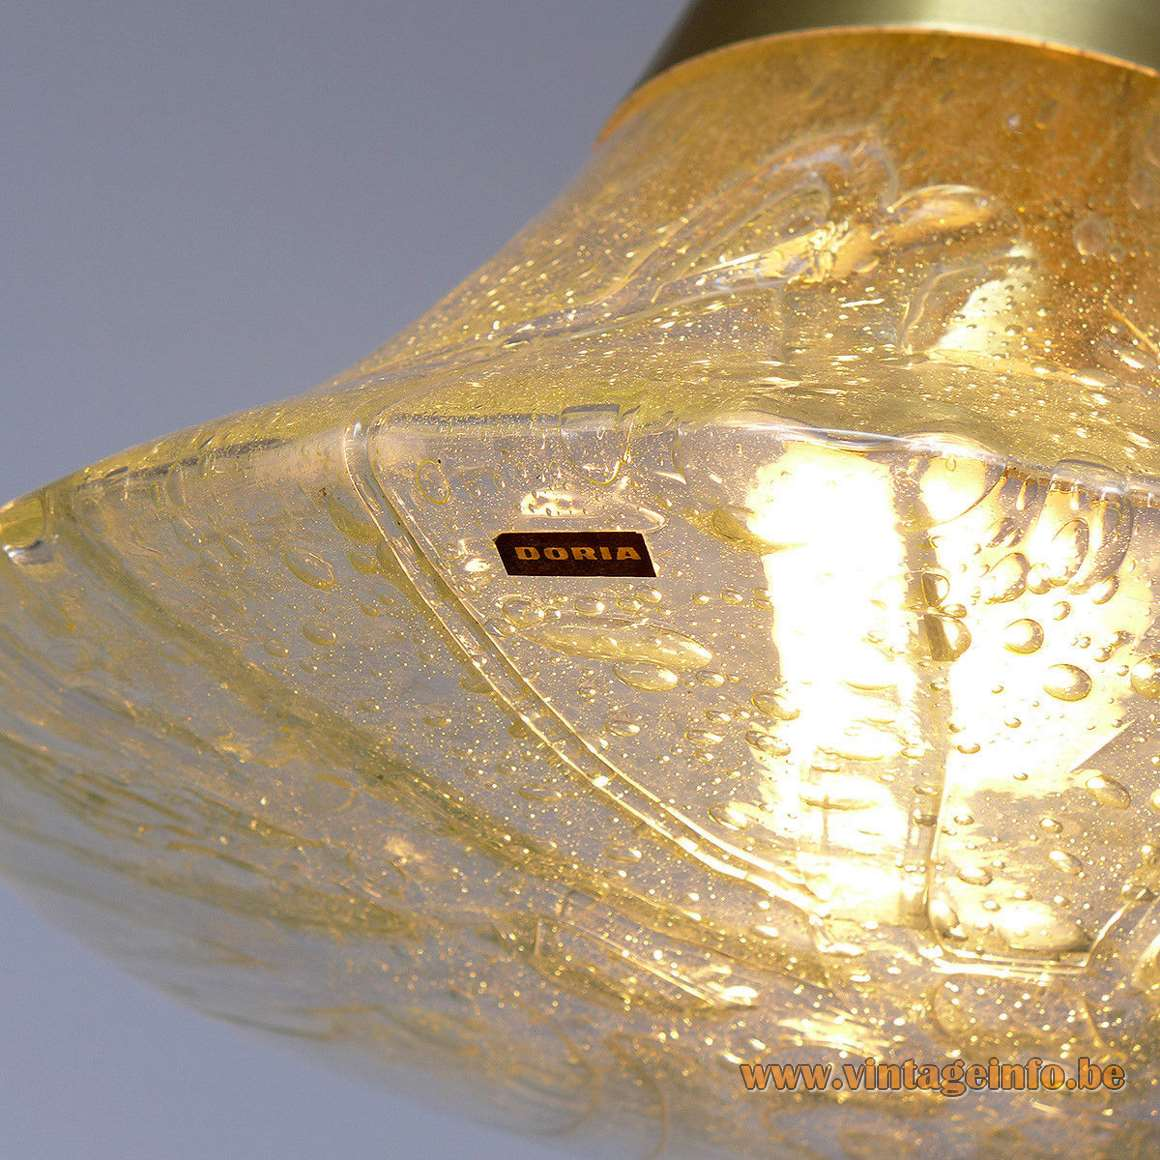 DORIA pendant lamp 7163 embossed conical clear amber veined glass aluminium tube E27 socket 1970s label